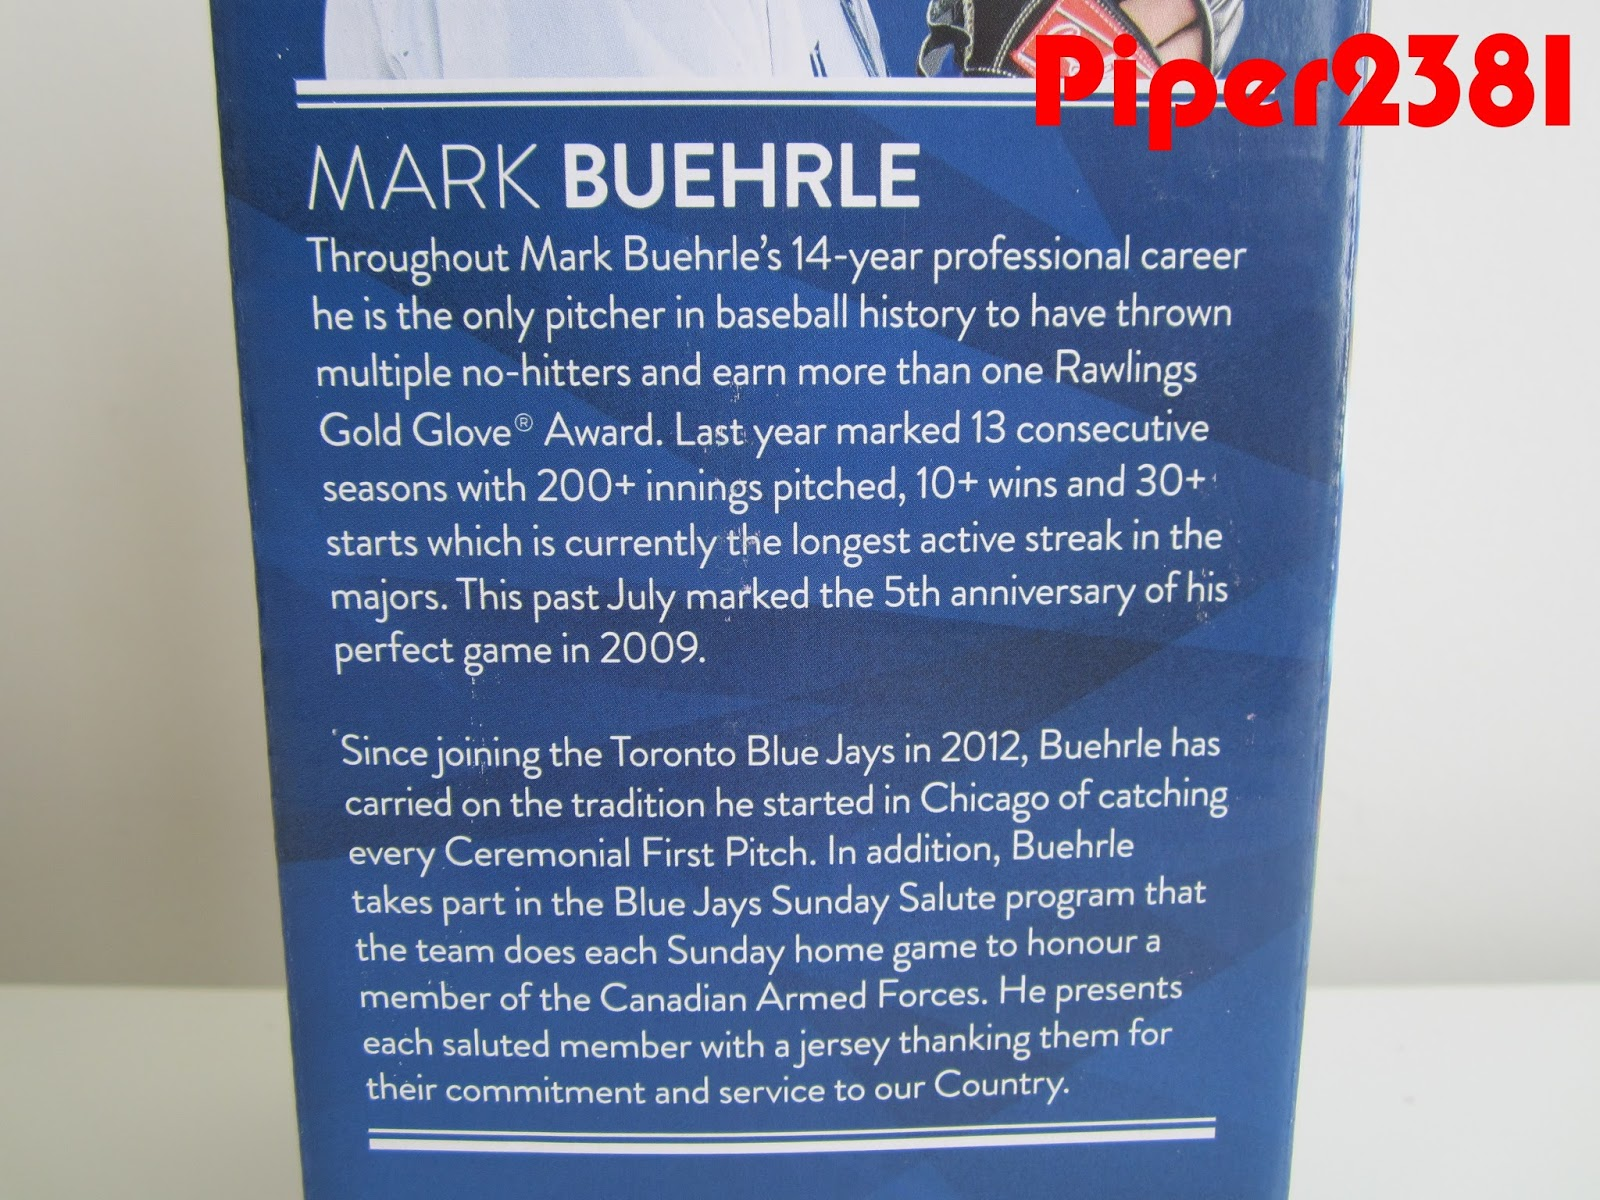 f468fb19a24 Buehrle was traded from the Miami Marlins in 2012